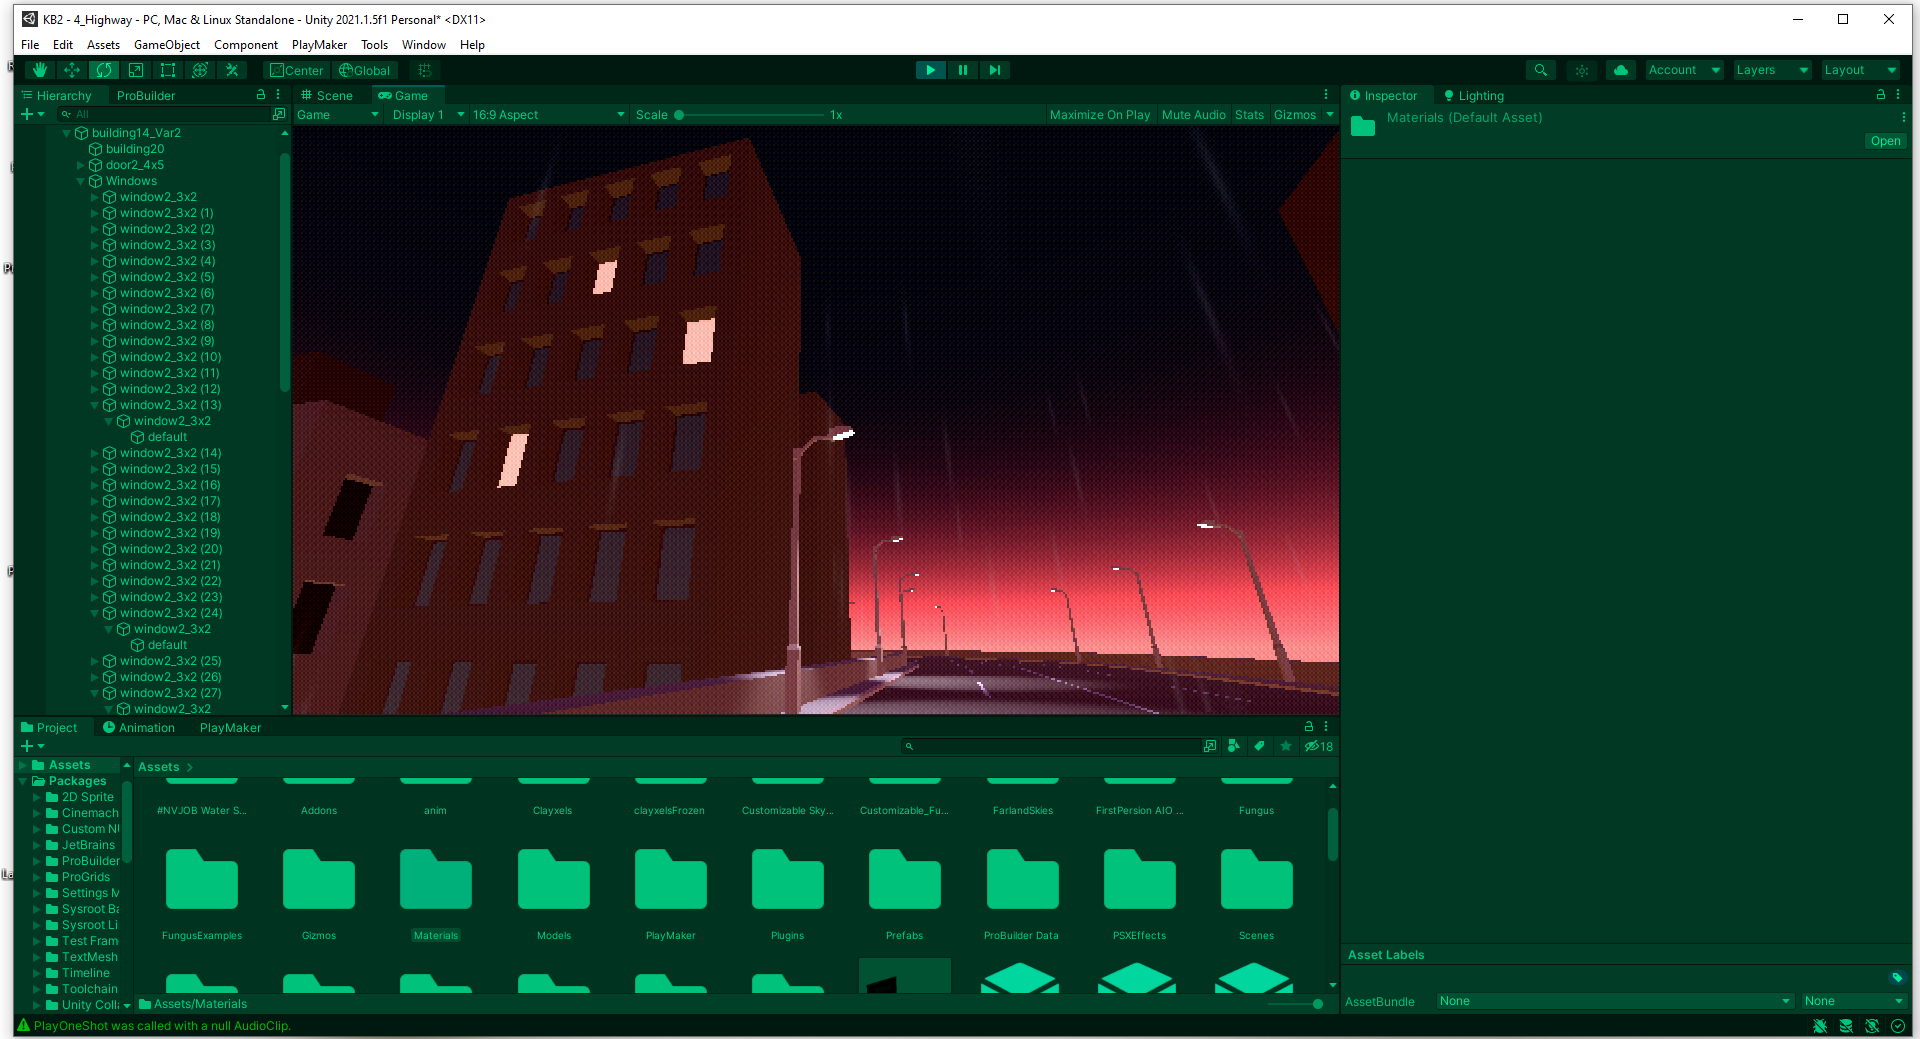 A screenshot showing a computer generated image of a tall building at sunset, with dozens of green folders of files below